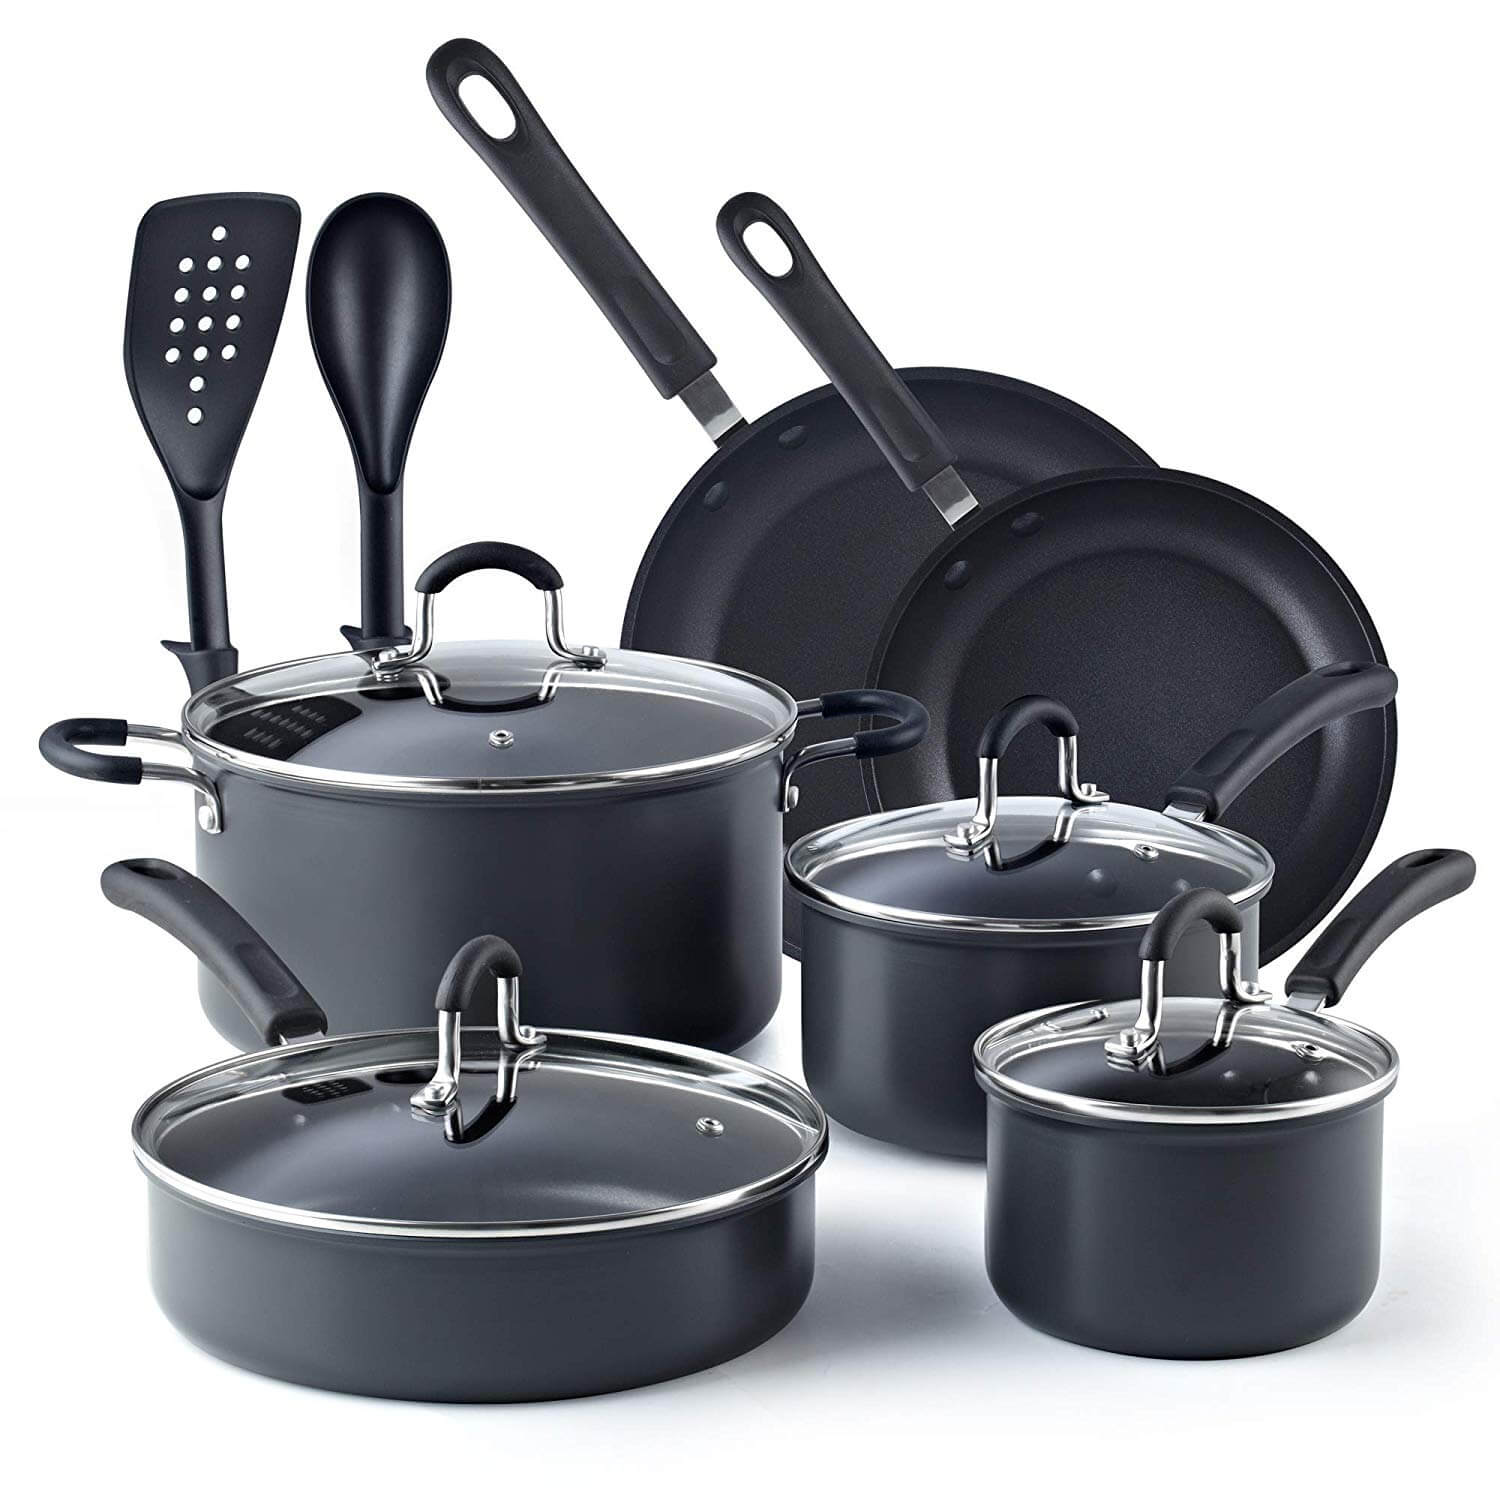 Cook N Home 02597 Non-stick Hard Anodized Cookware Set